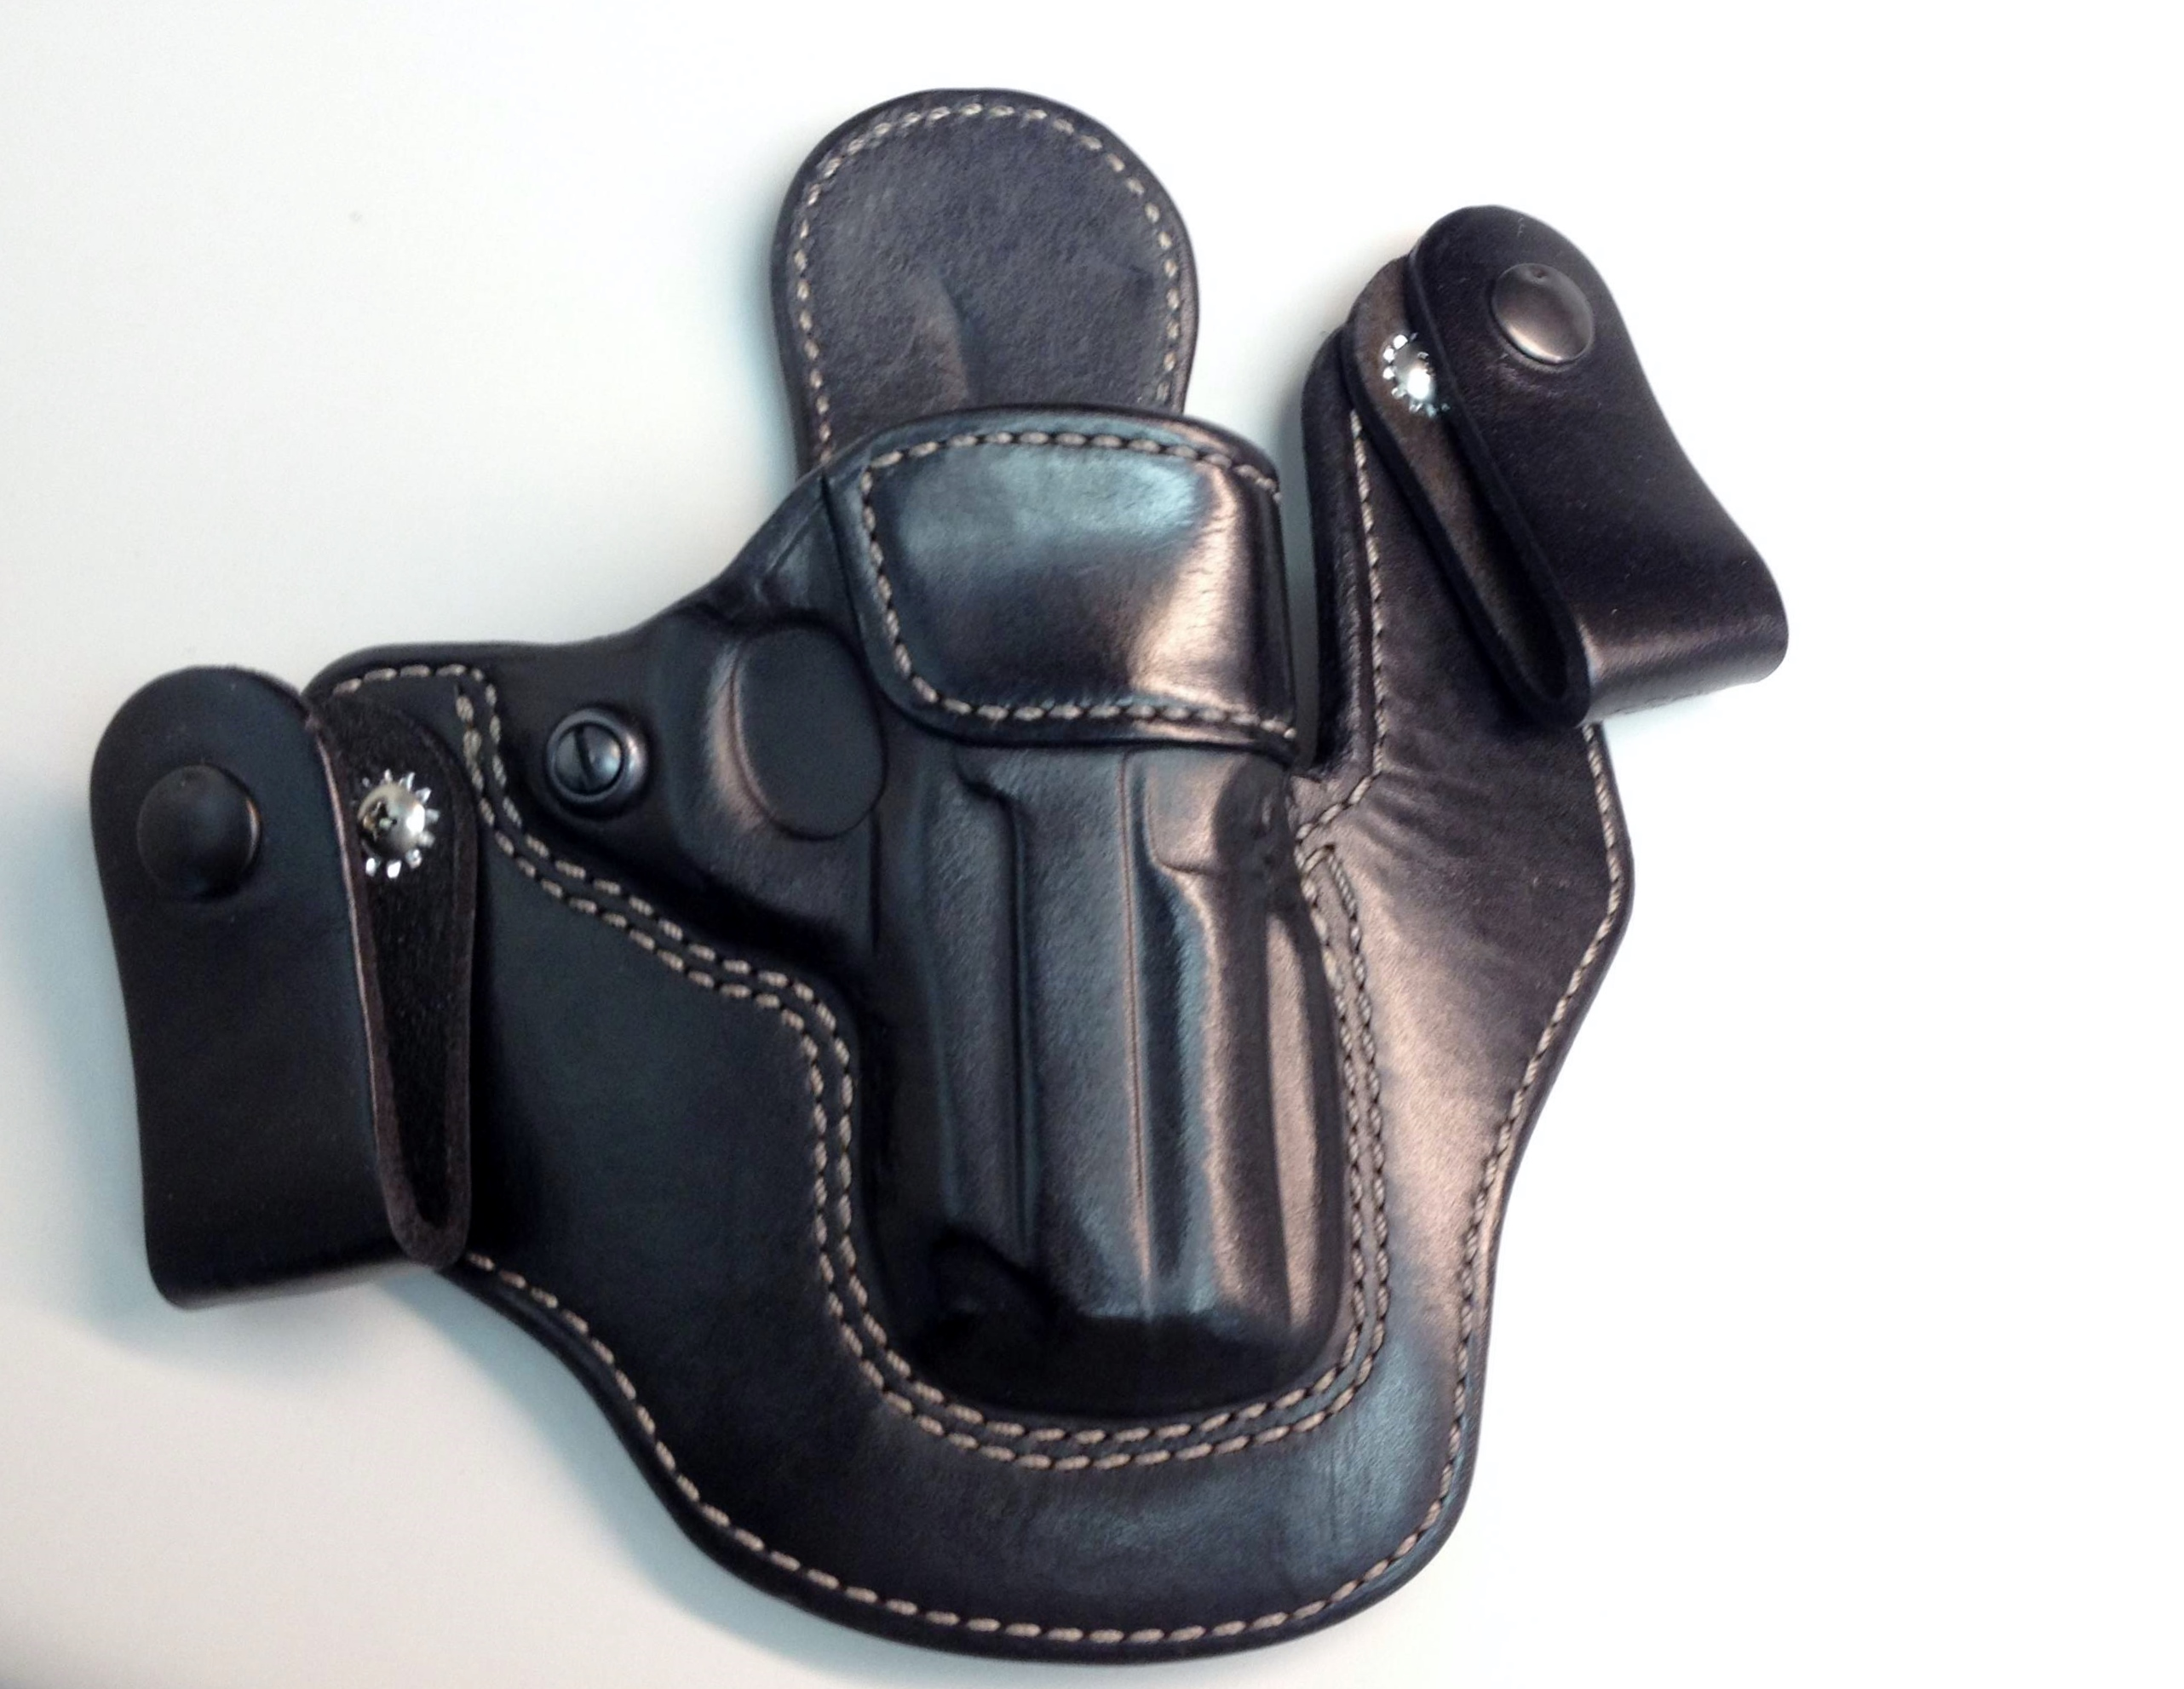 Holster for Sig Sauer Ultra Compact 1911 - Page 2